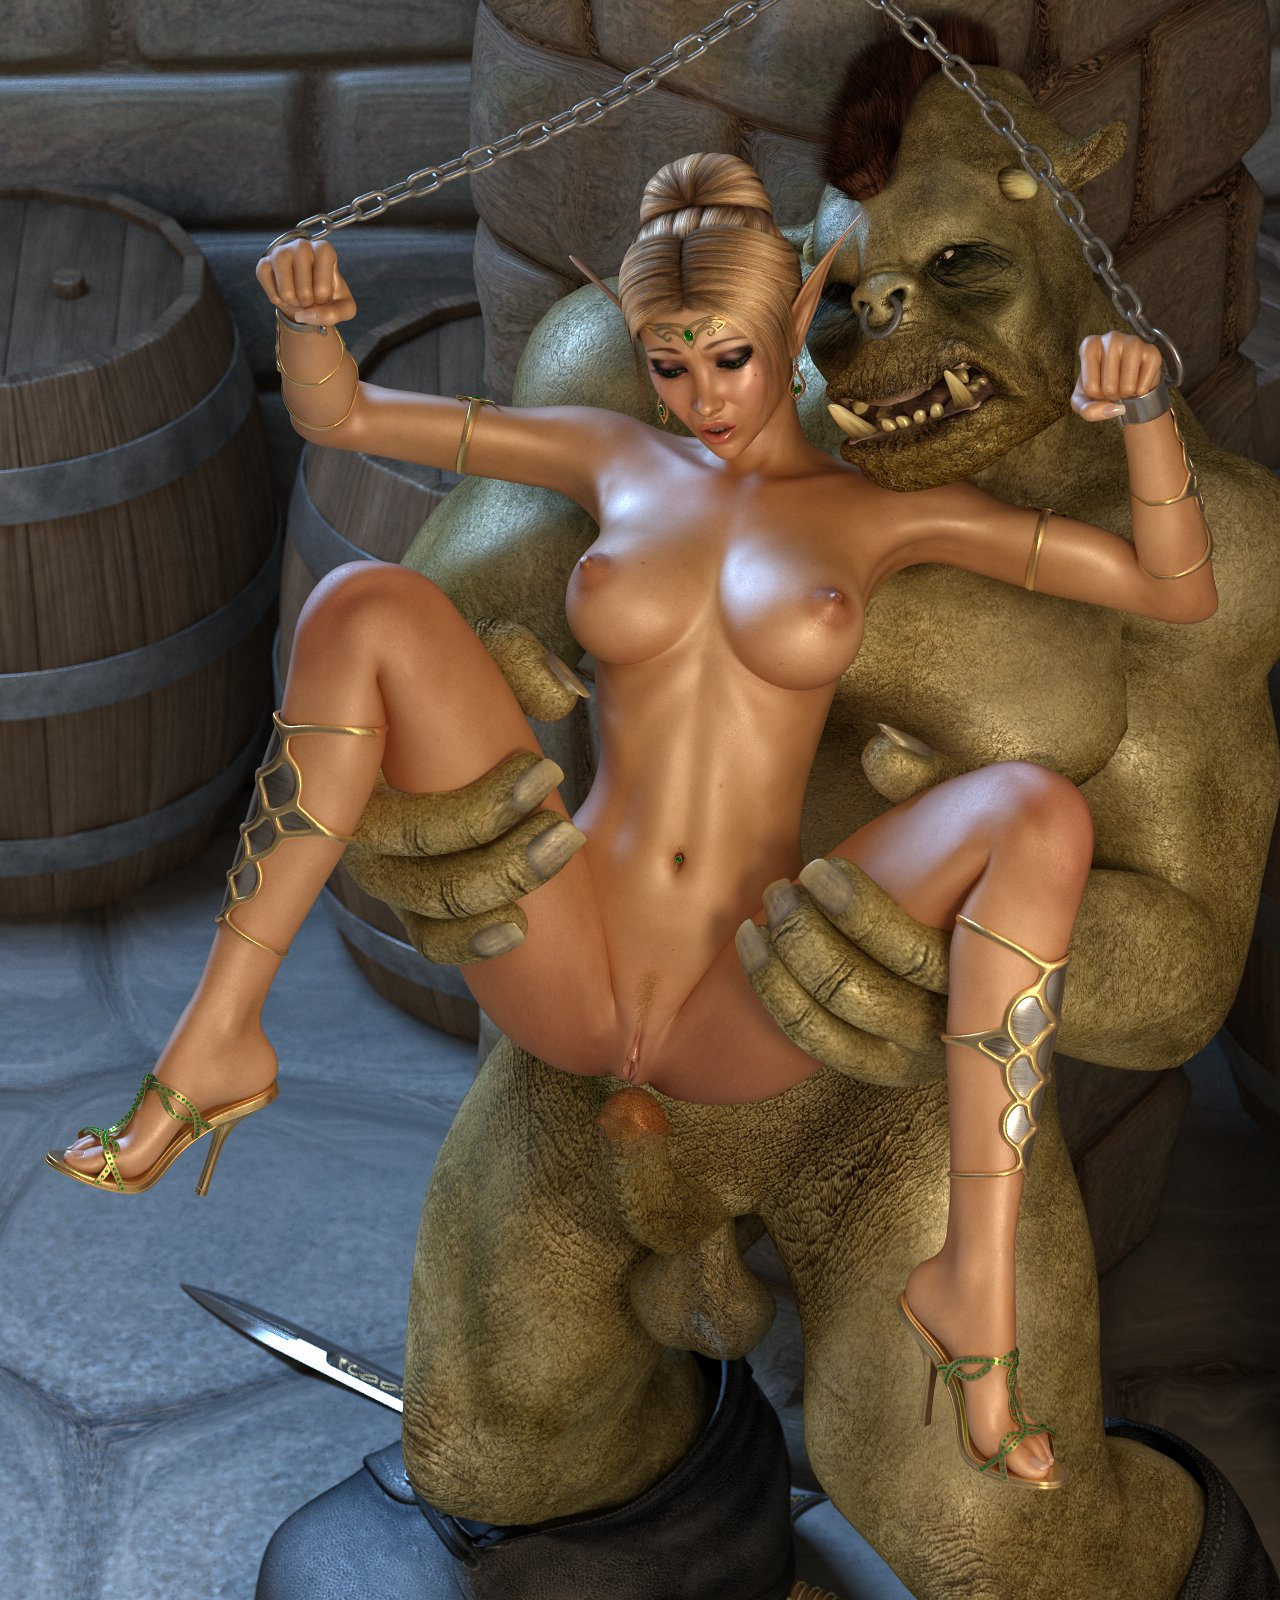 Nude mod cyber monster sexual scene